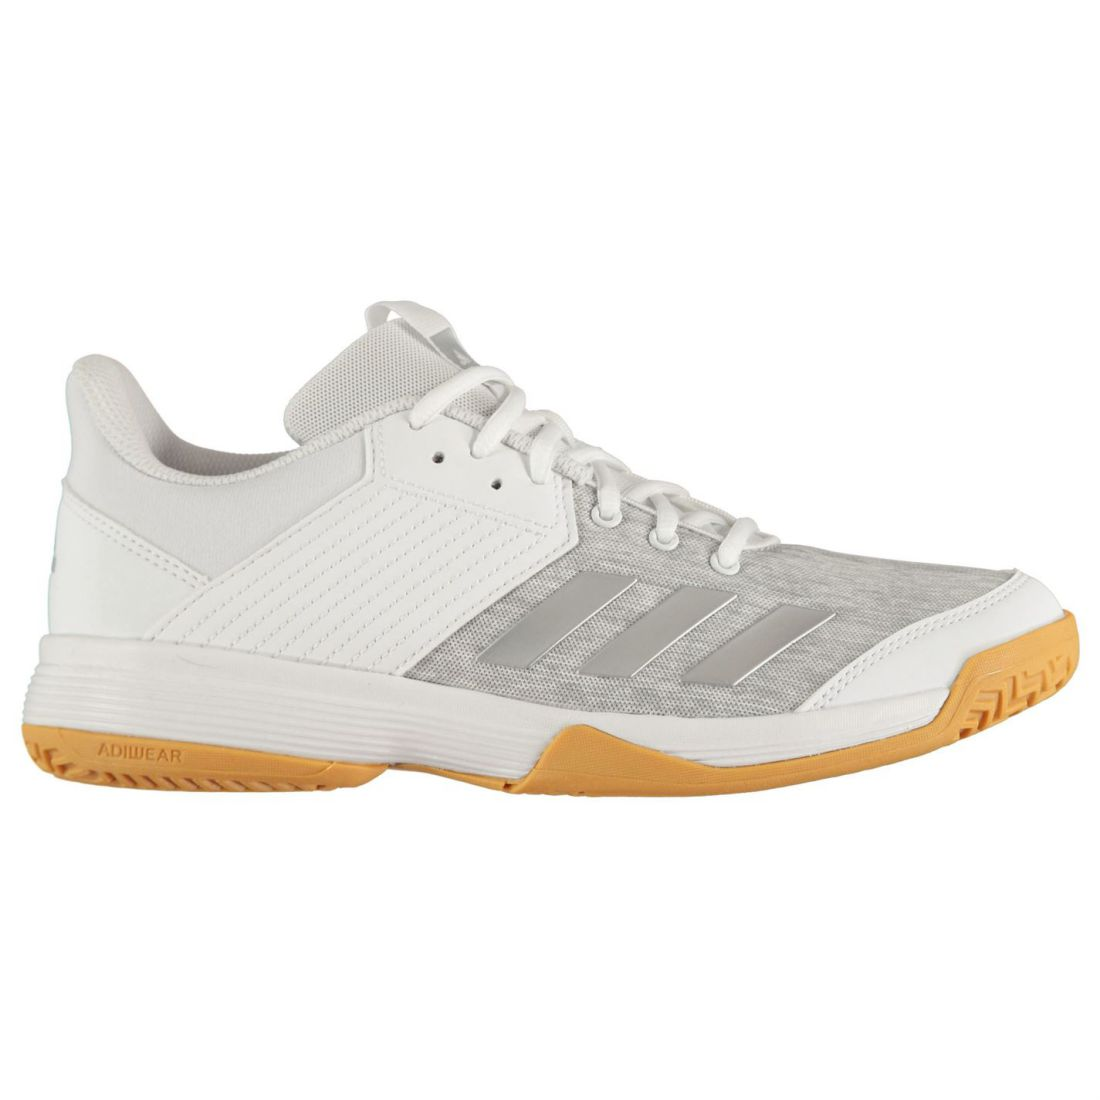 on sale f5194 497b8 adidas-Womens-Ligra-6-Indoor-Court-Shoes-Volleyball-